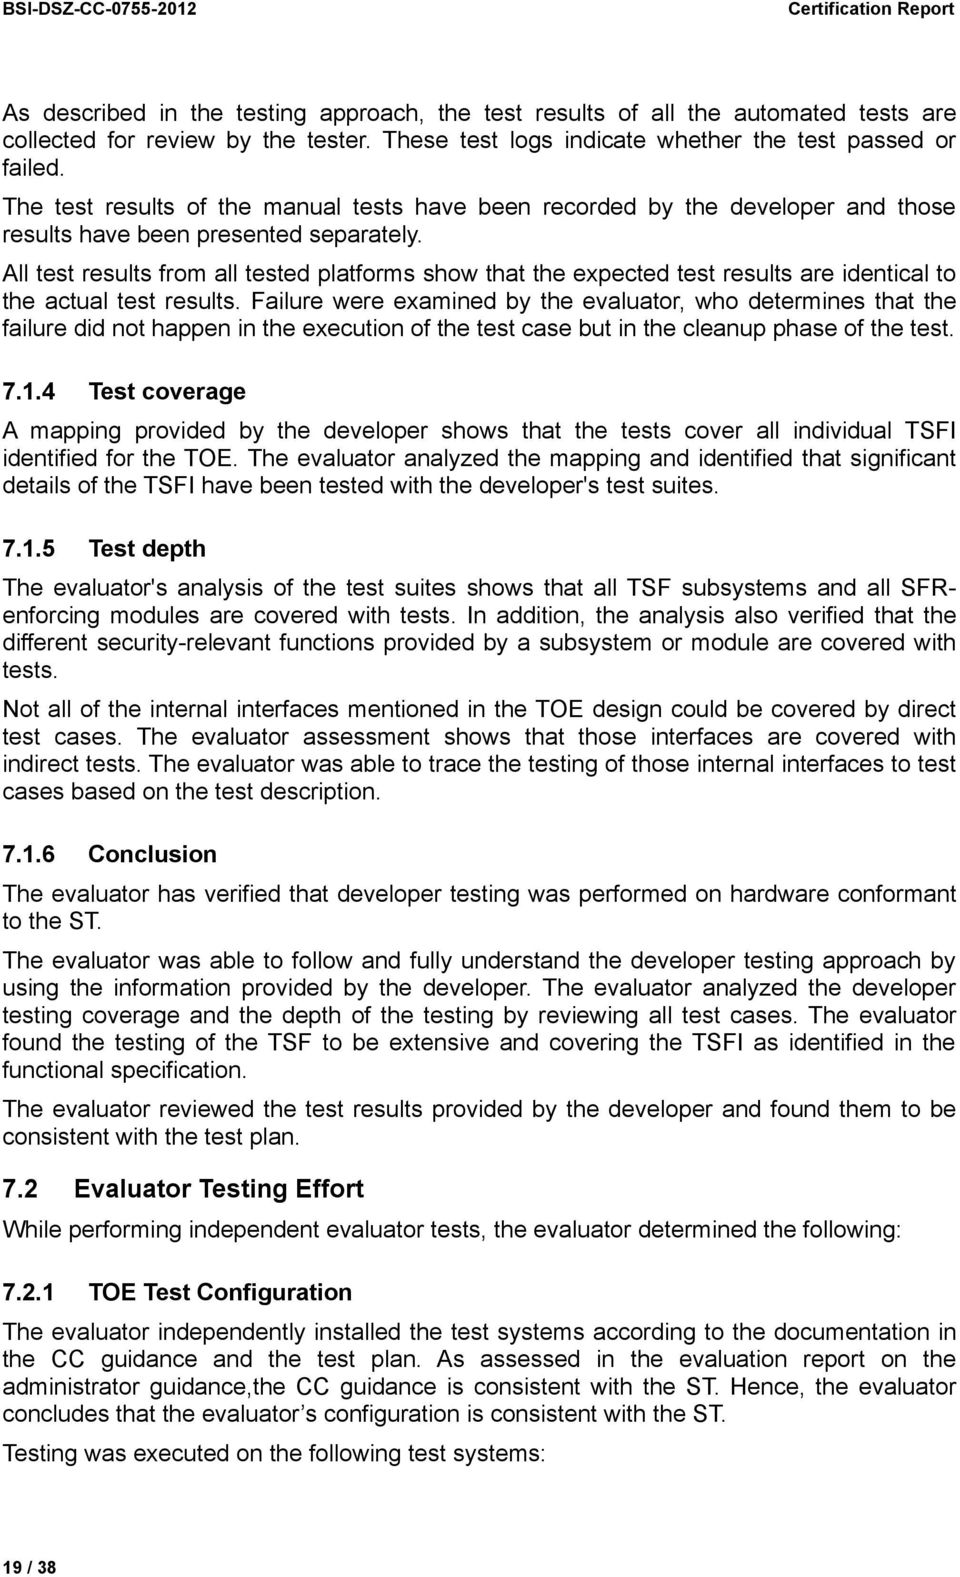 All test results from all tested platforms show that the expected test results are identical to the actual test results.